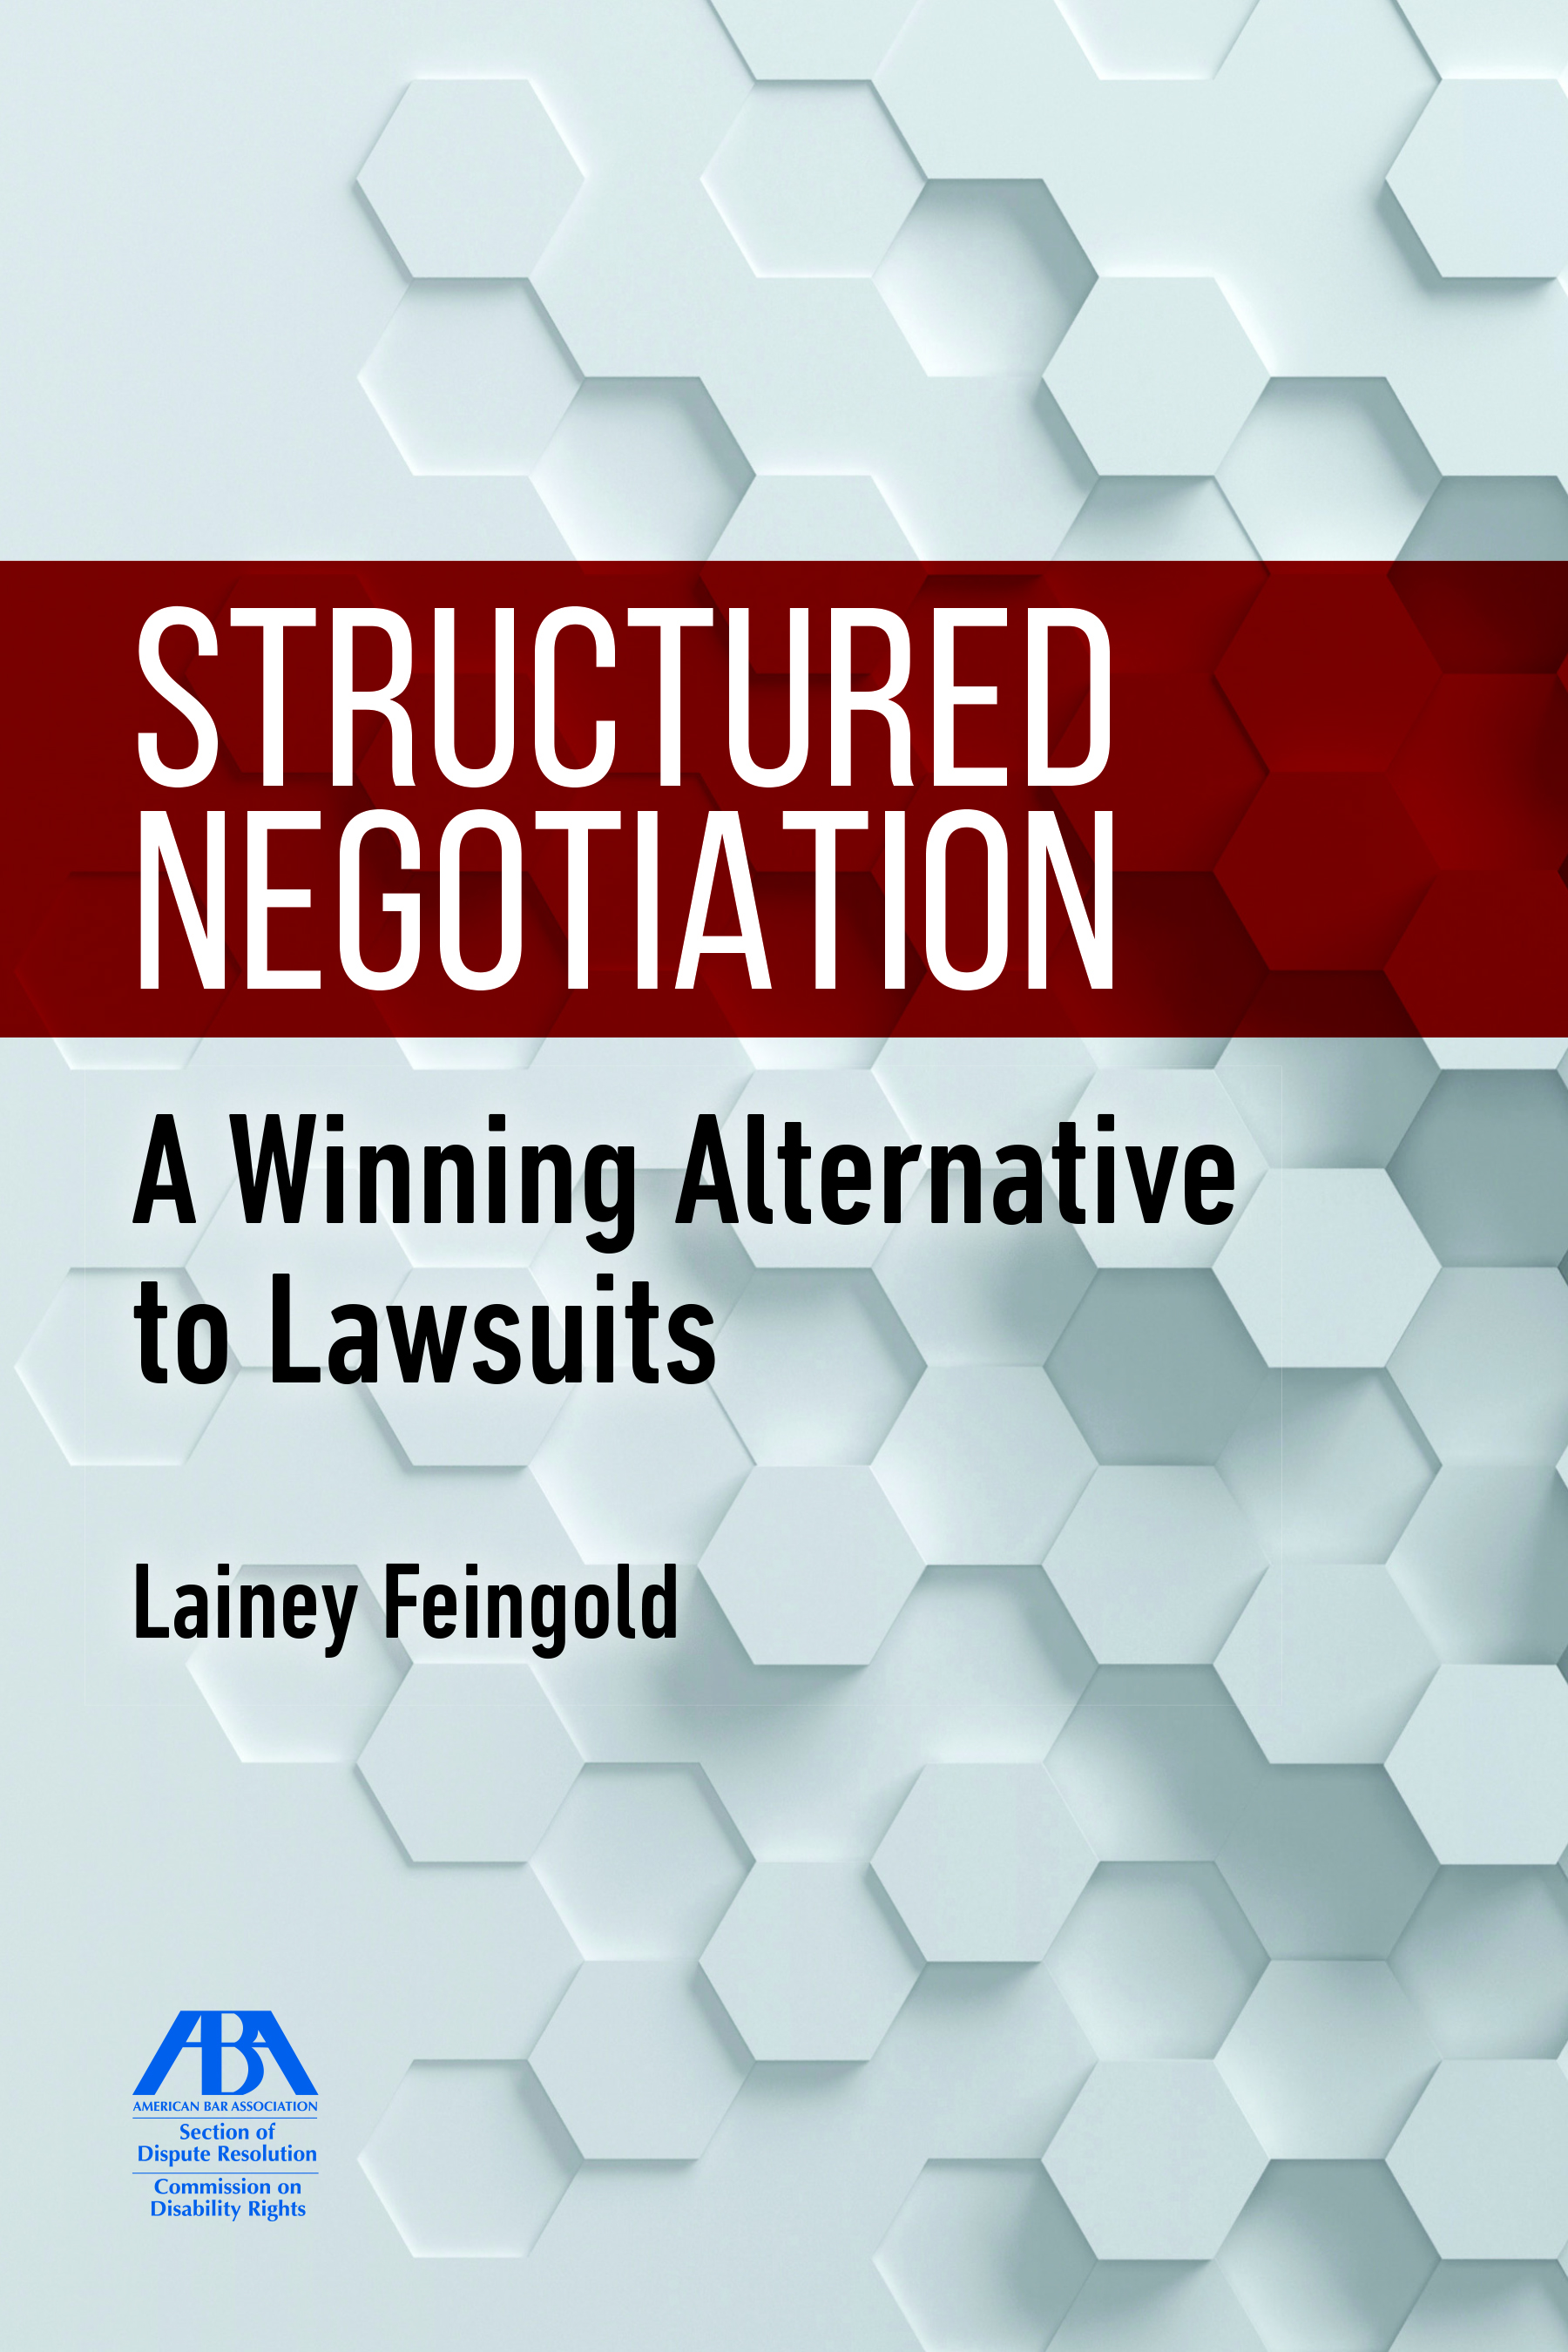 Structured Negotiation: A Winning Alternative to Lawsuits